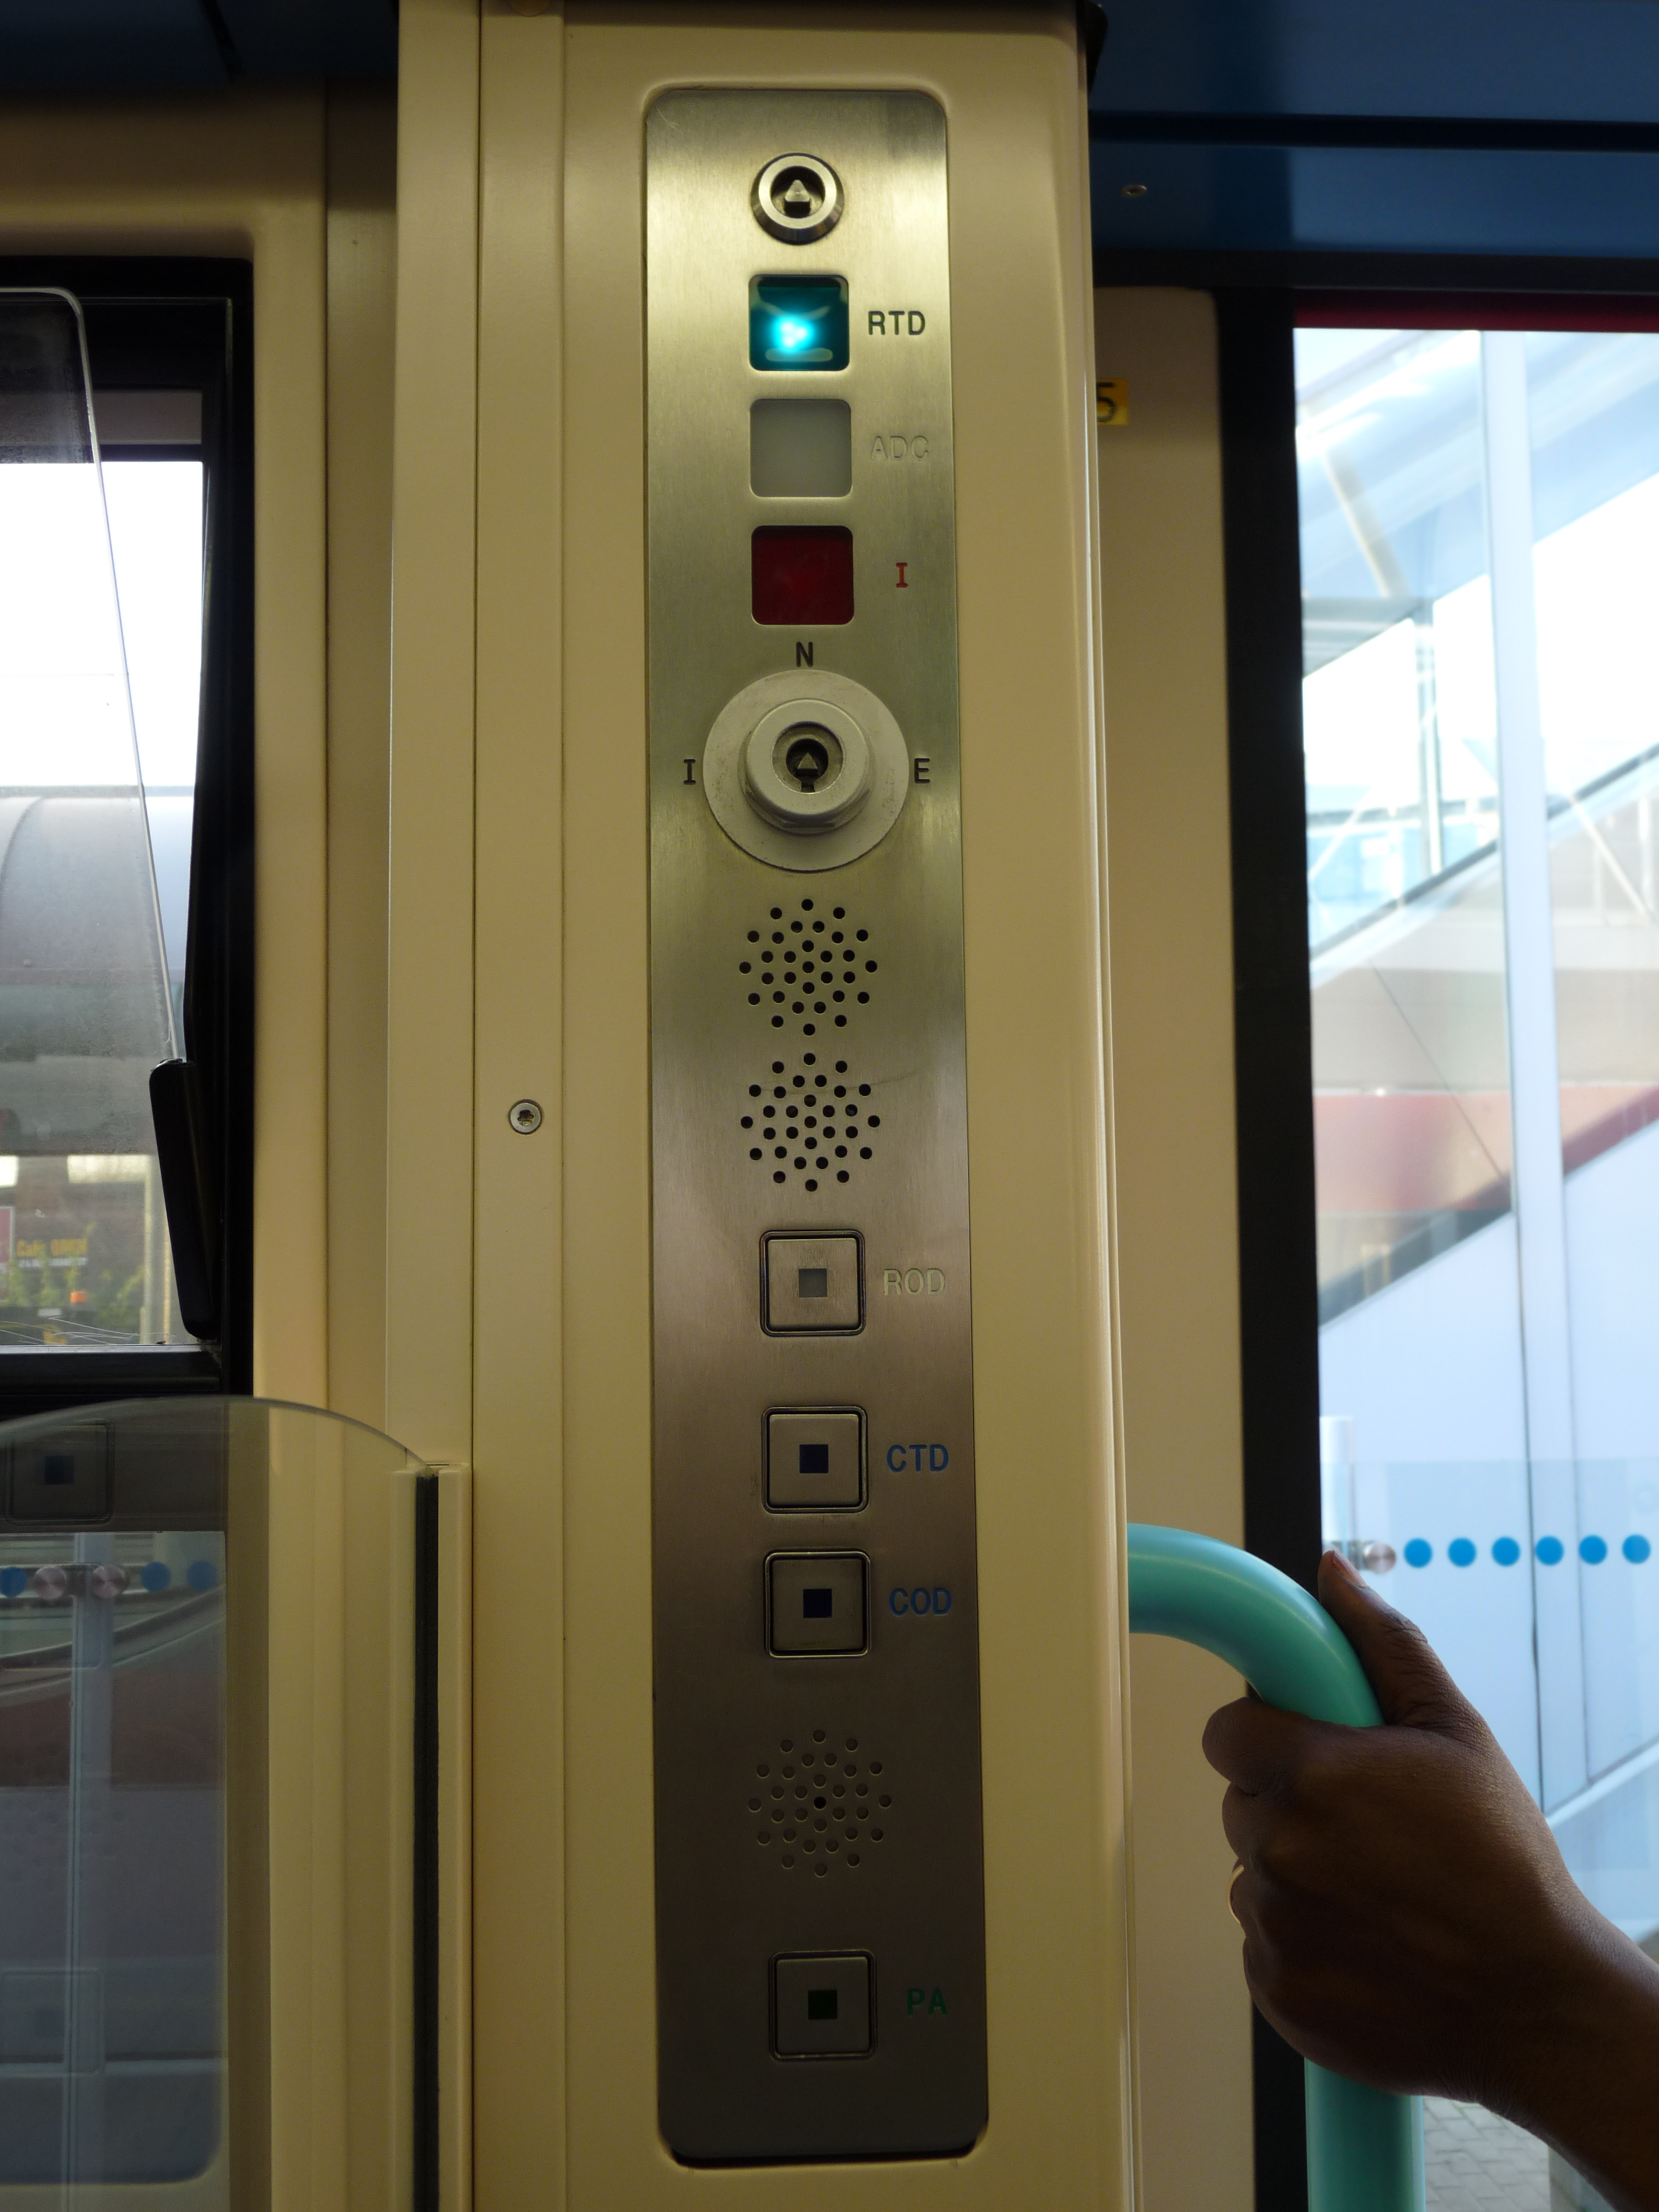 FileDLR door controls 02.jpg & File:DLR door controls 02.jpg - Wikimedia Commons